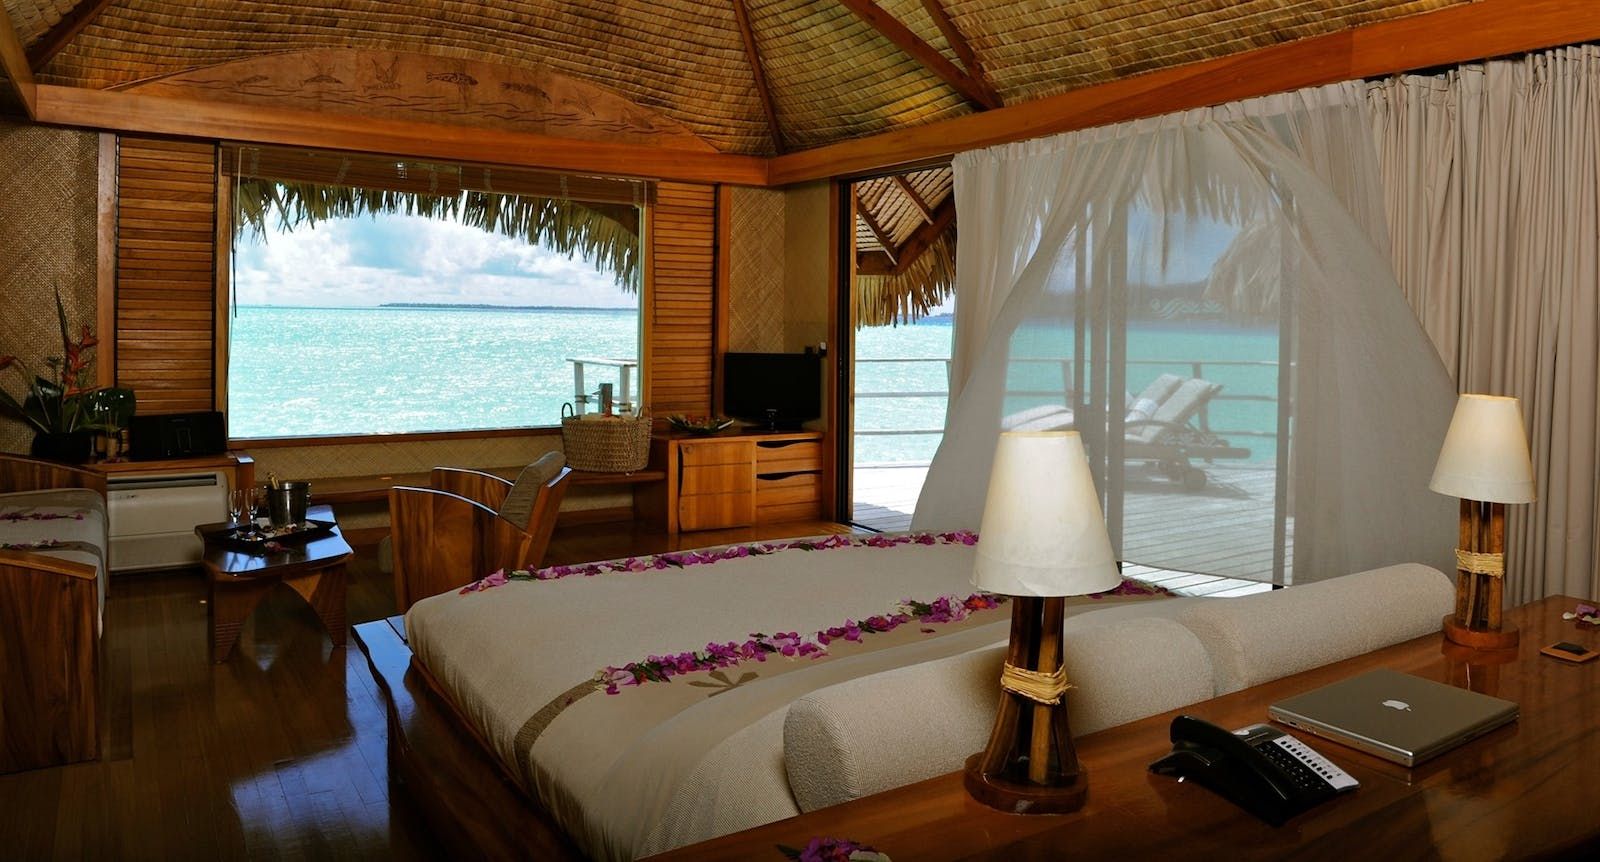 Overwater Bungalow at Le Taha'a Island Resort & Spa, Tahiti, French Polynesia